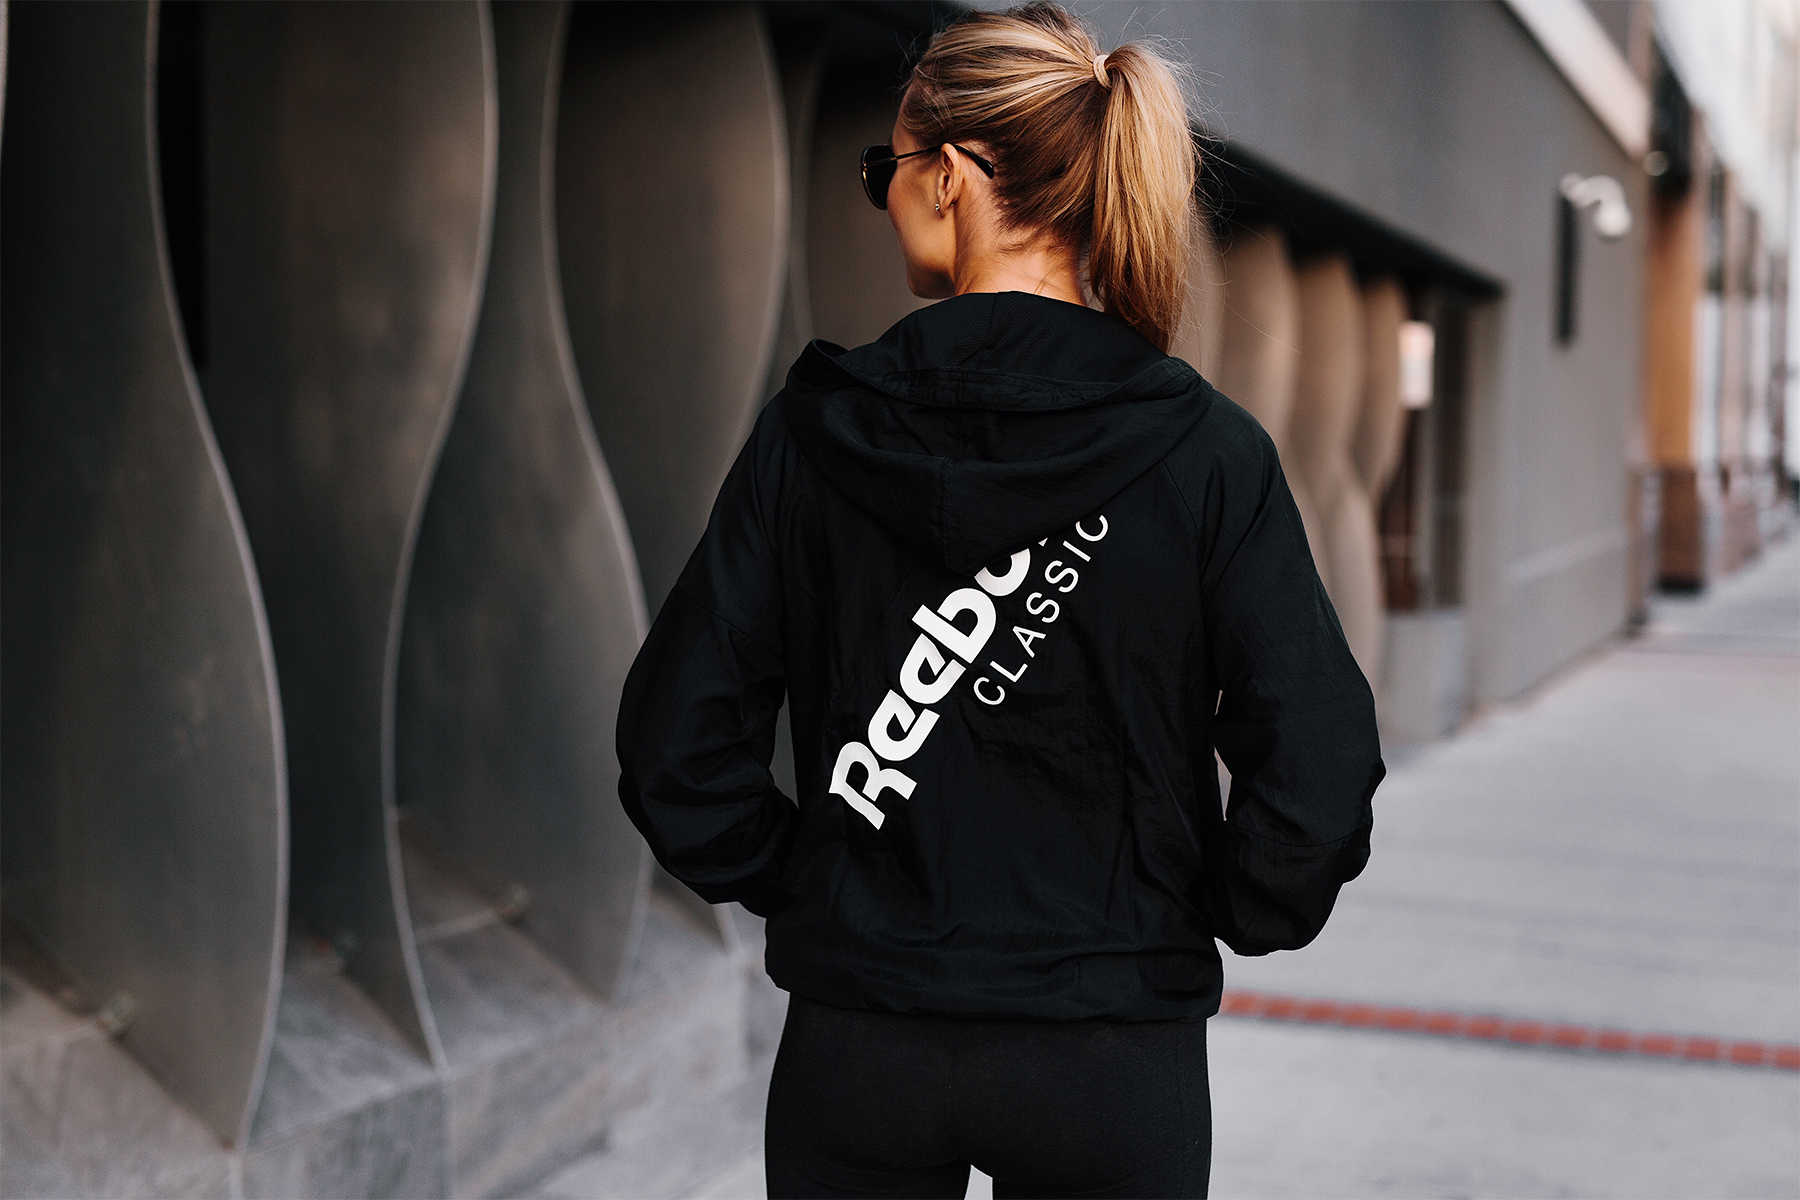 Blonde Woman Wearing Reebok Logo Black Windbreaker Fashion Jackson San Diego Fashion Blogger Activewear Street Style